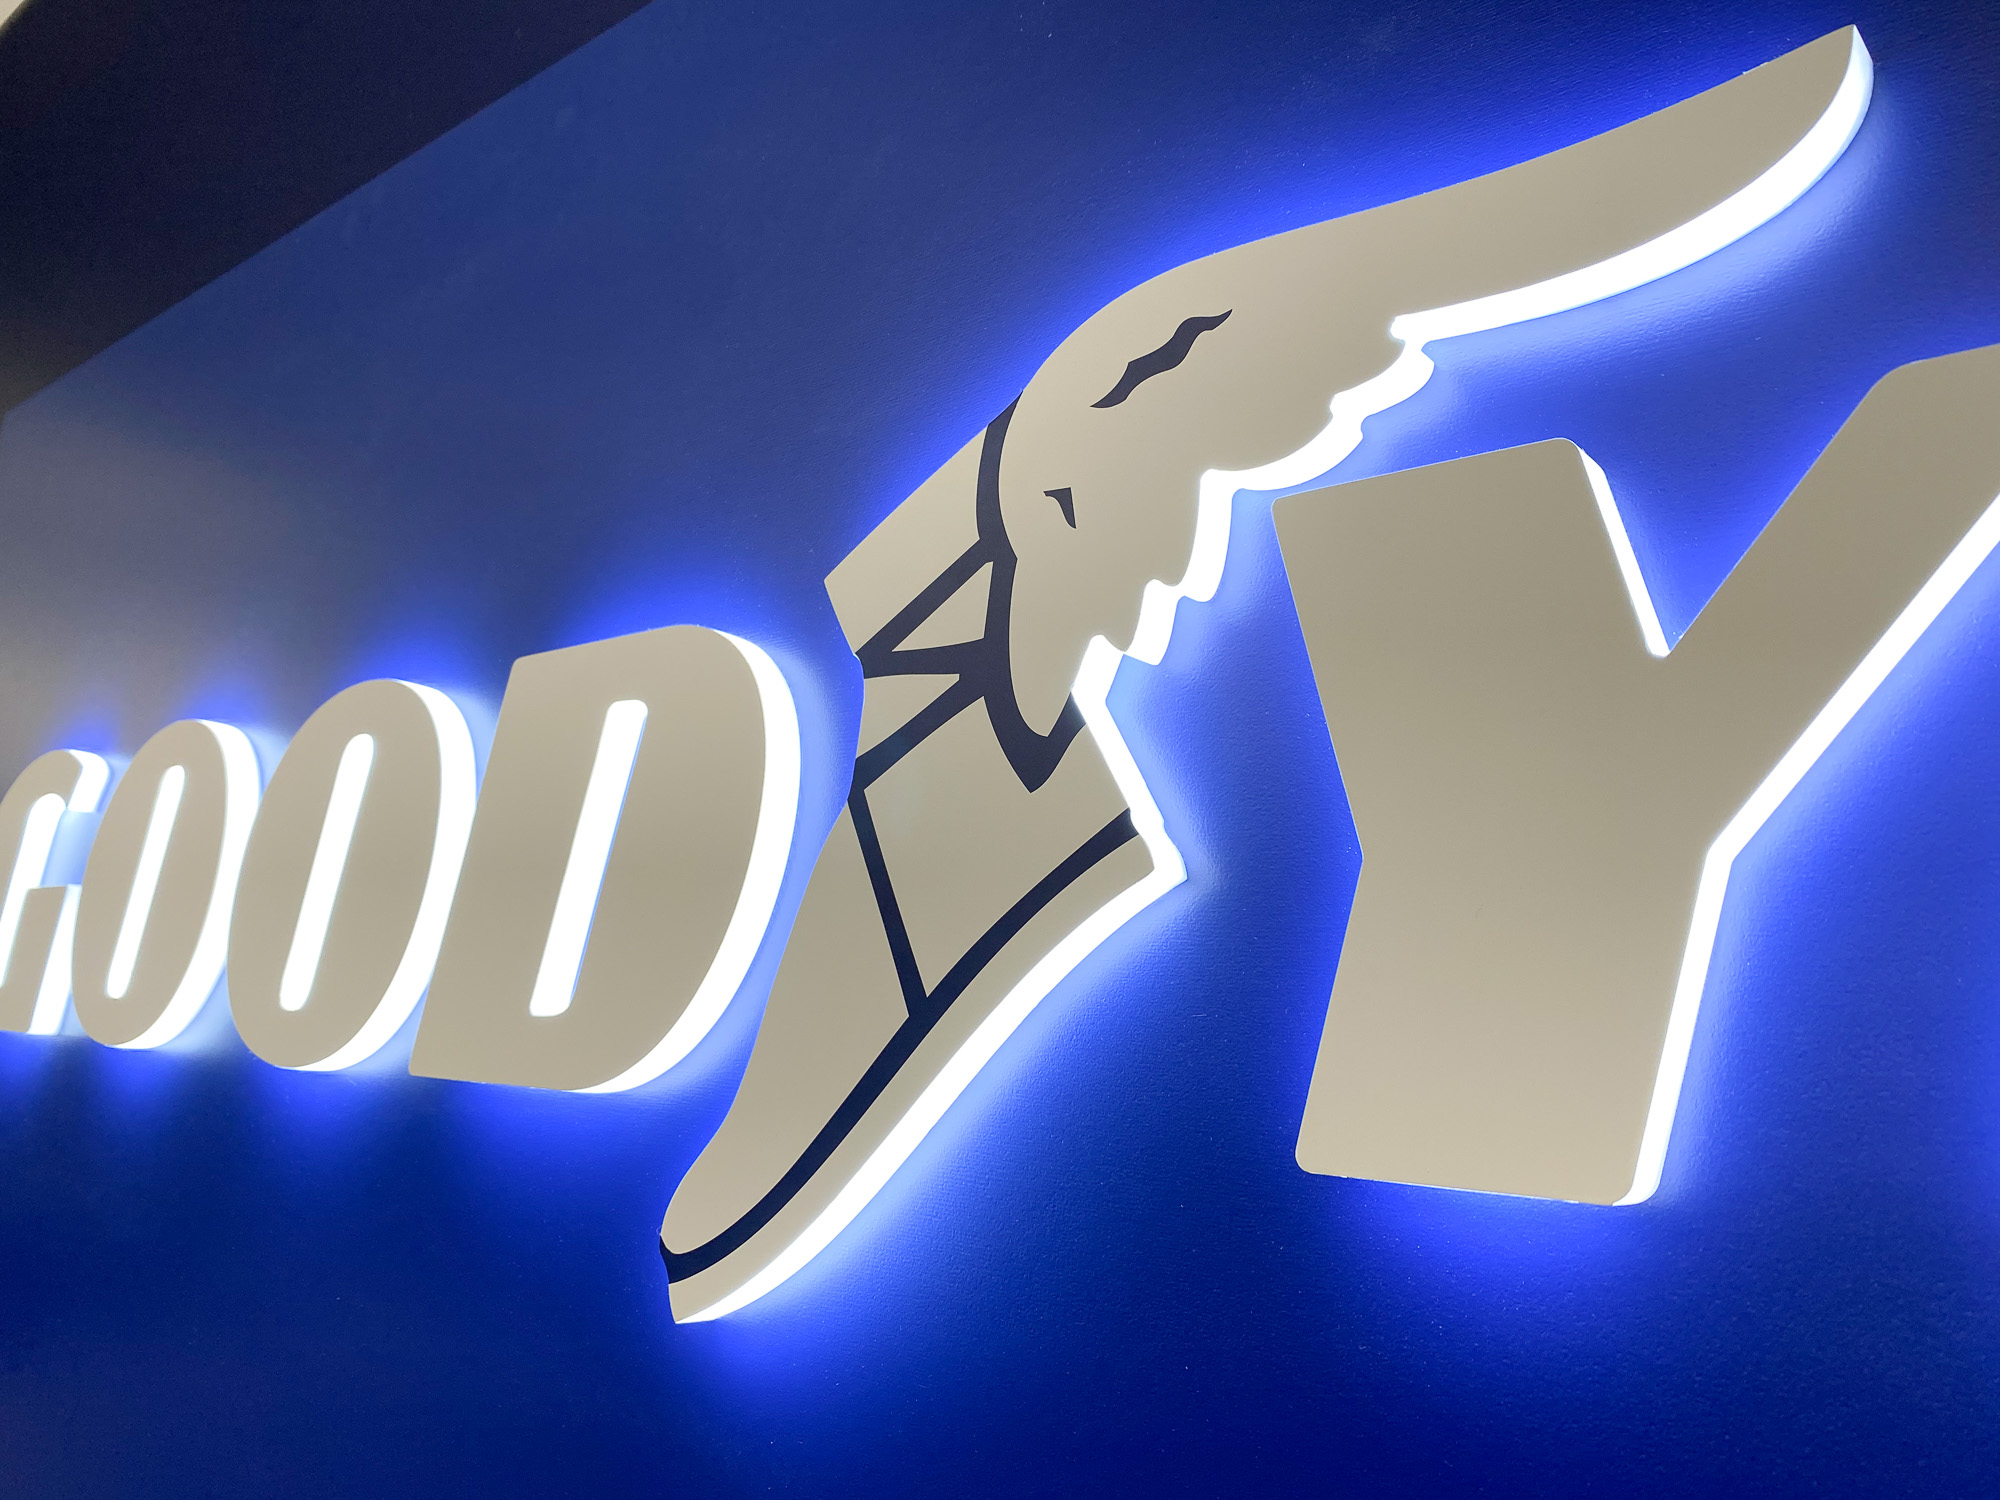 Illuminated, blue, edge-lit lobby sign behind reception desk for the San Francisco office of Goodyear, a tire manufacturer.